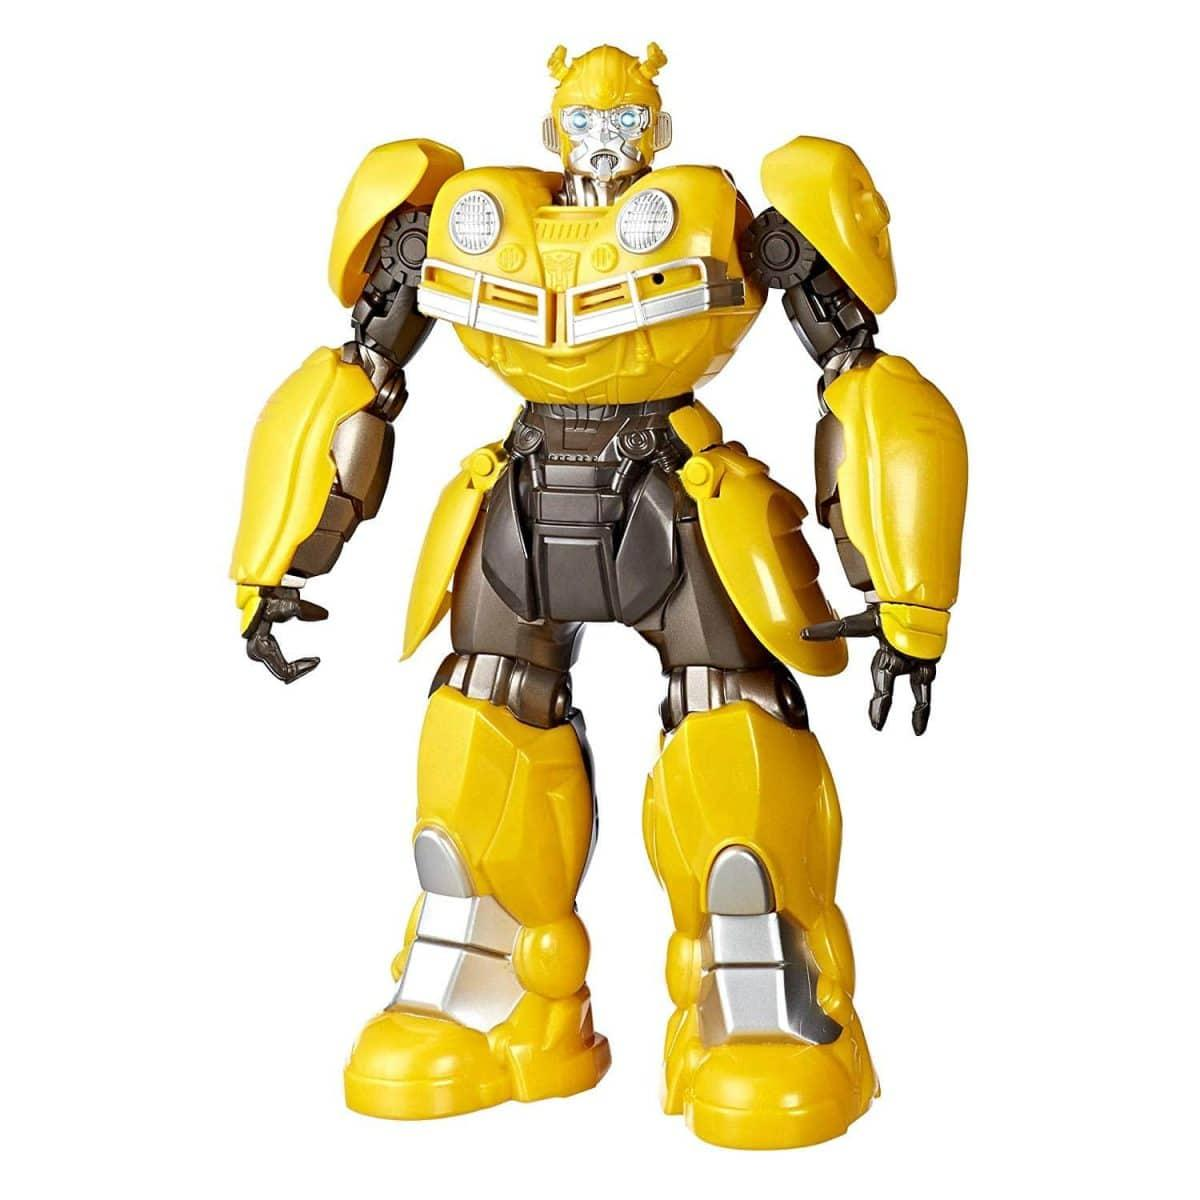 Bumblebee Movie Toys, D.J. Bumblebee